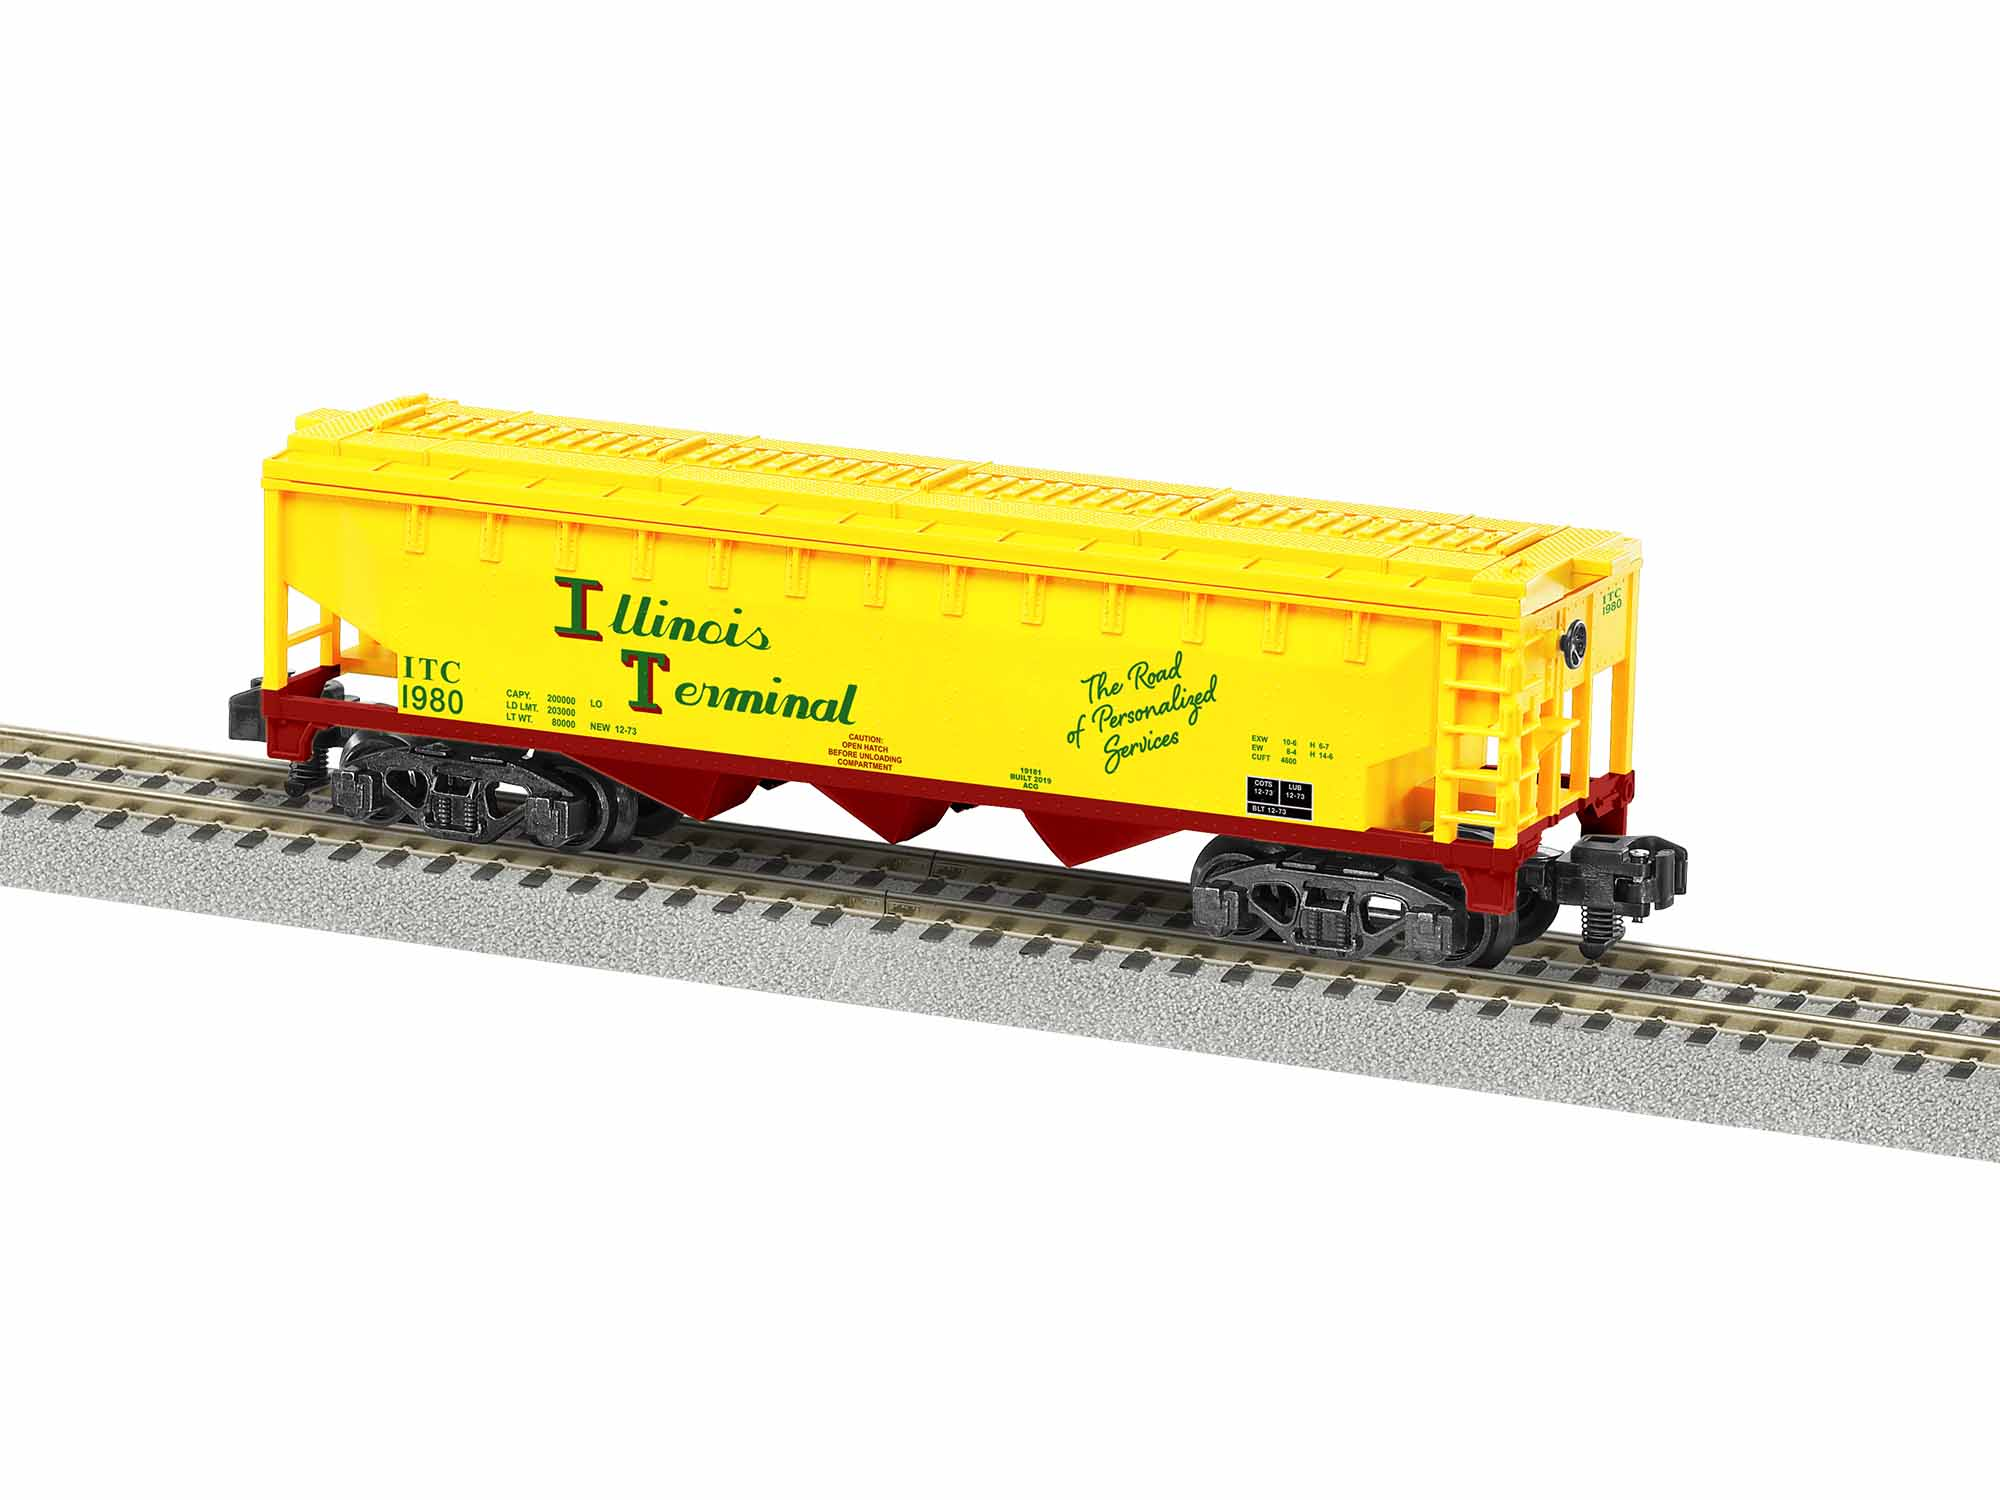 LNL1919182 Lionel S AF 3 Bay Covered Hopper, IT #1980 434-1919182